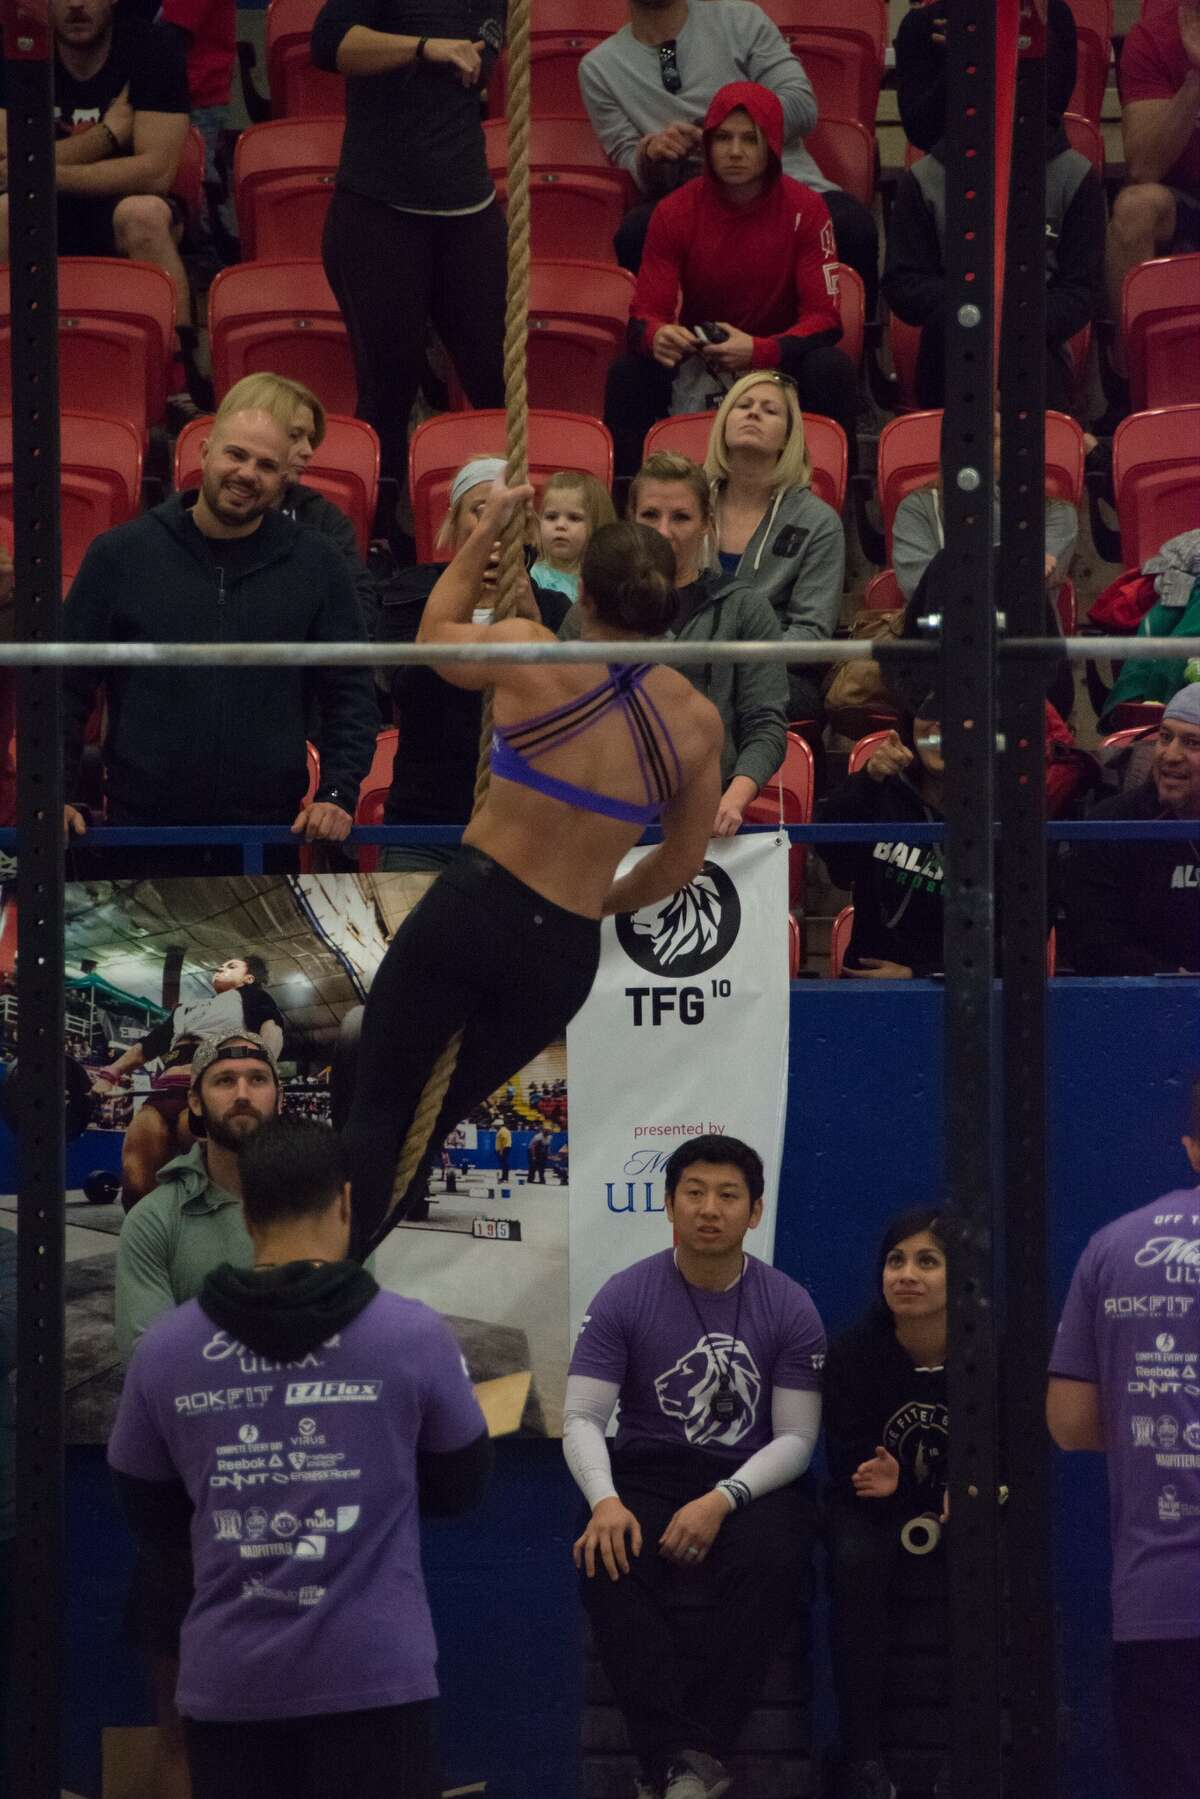 Jessica Aelvoet, a San Antonio native, toughed a gauntlet of workouts during the The Fittest Games in Austin last weekend to become the 2017 Pro Women's Champion.